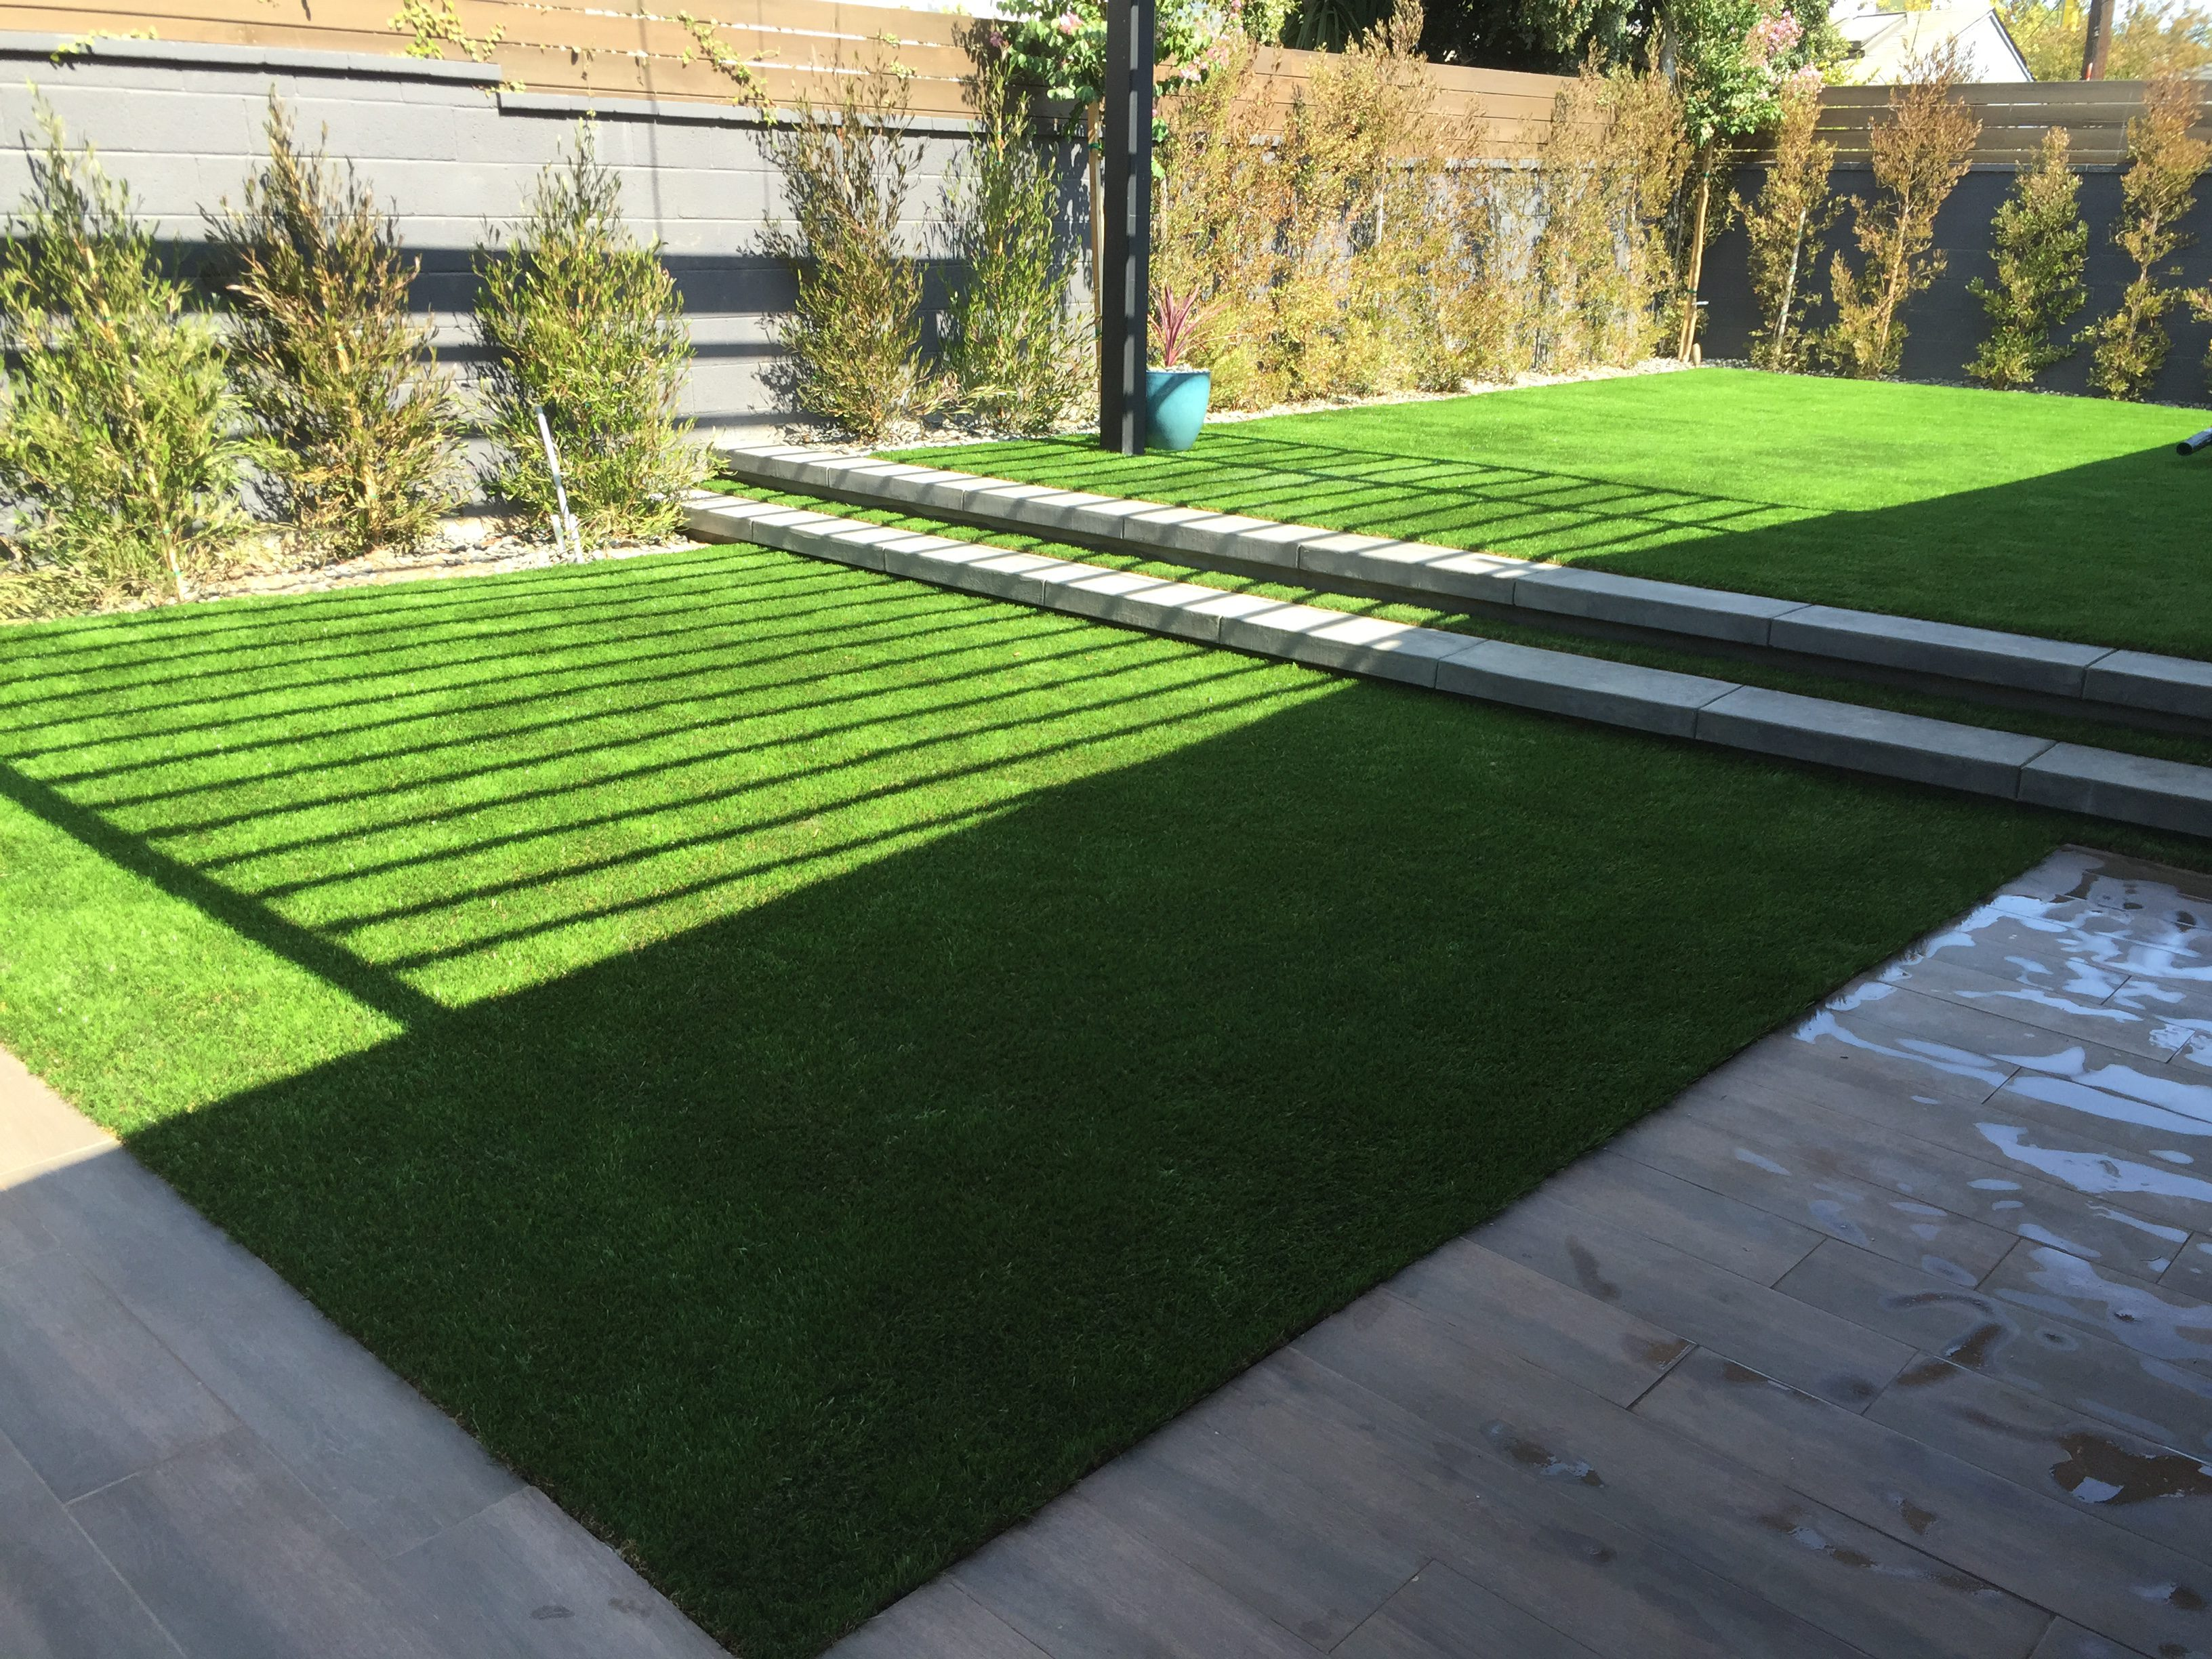 backyard renovation in the city of West Los Angeles - Concrete steps, Synthetic turf and wood tile.